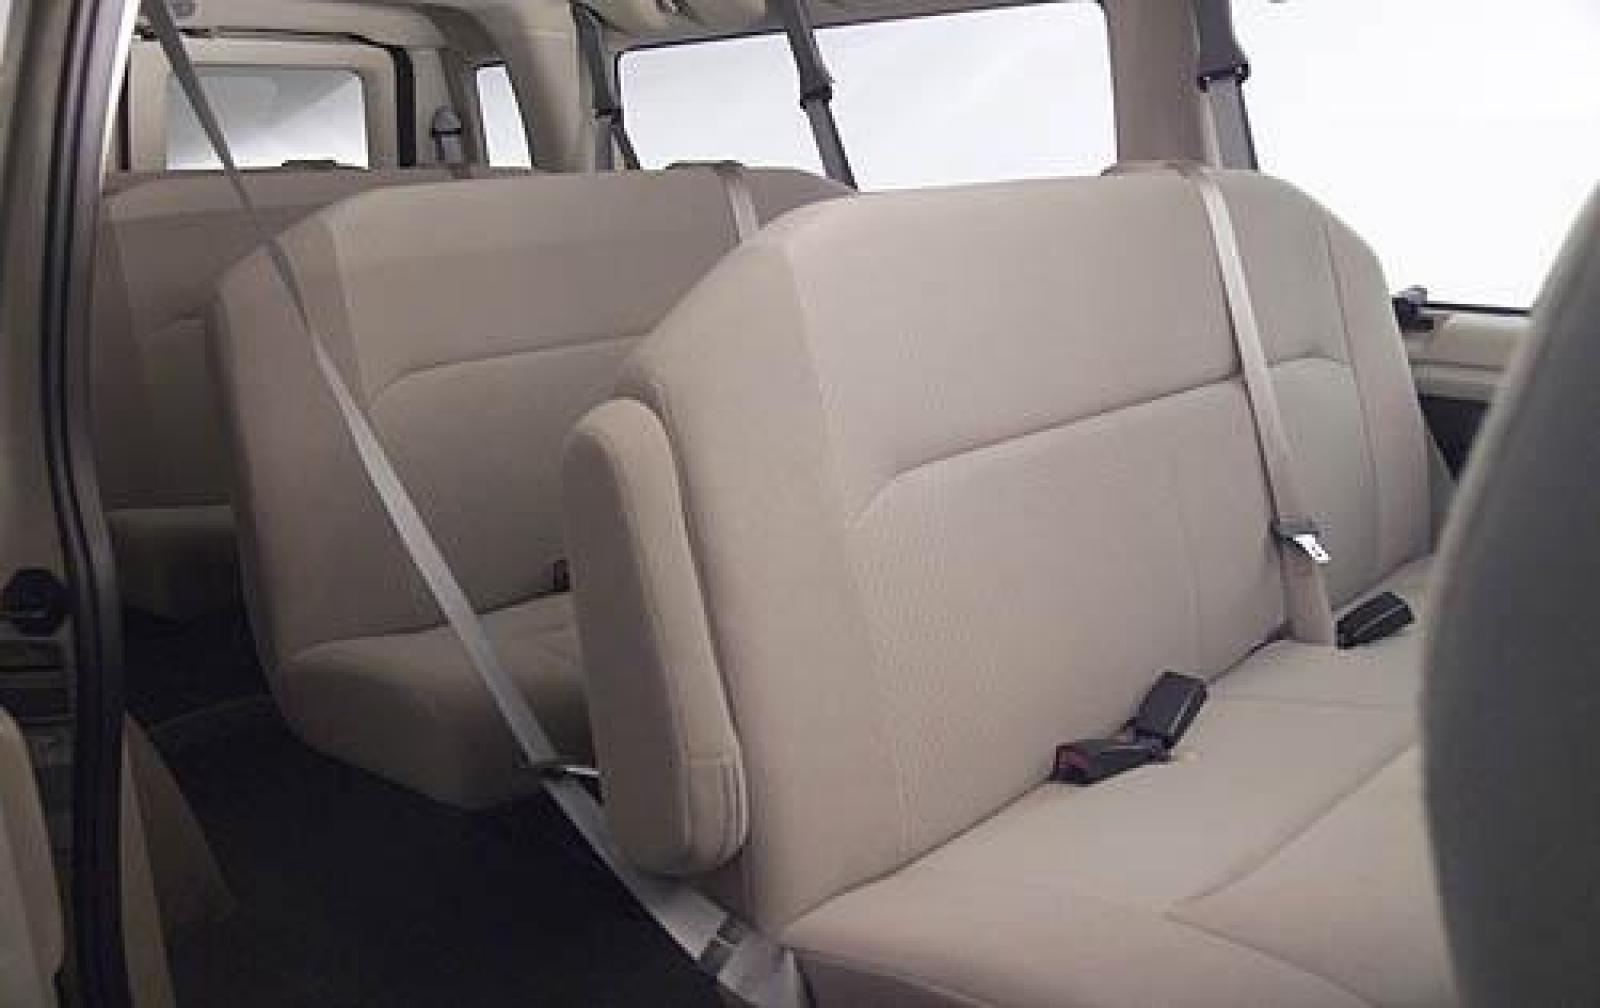 2009 Ford Econoline Wagon - Information and photos - Zomb Drive